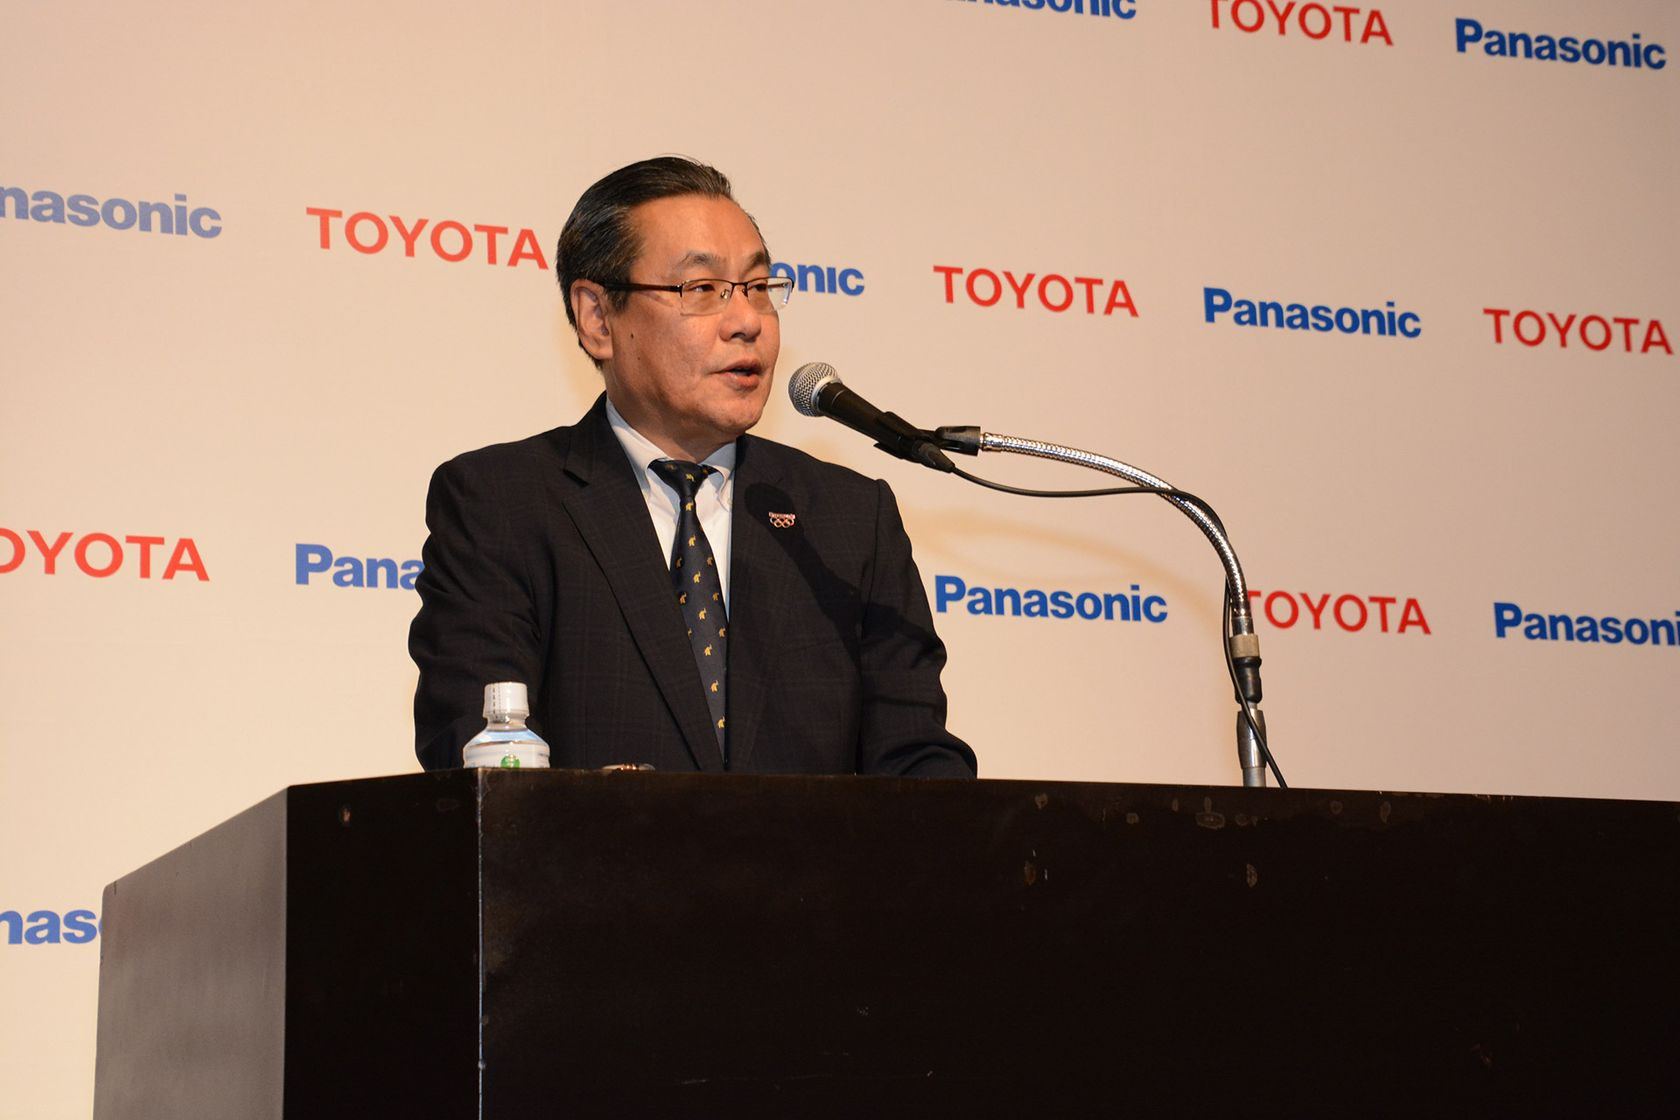 Toyota and Panasonic 3